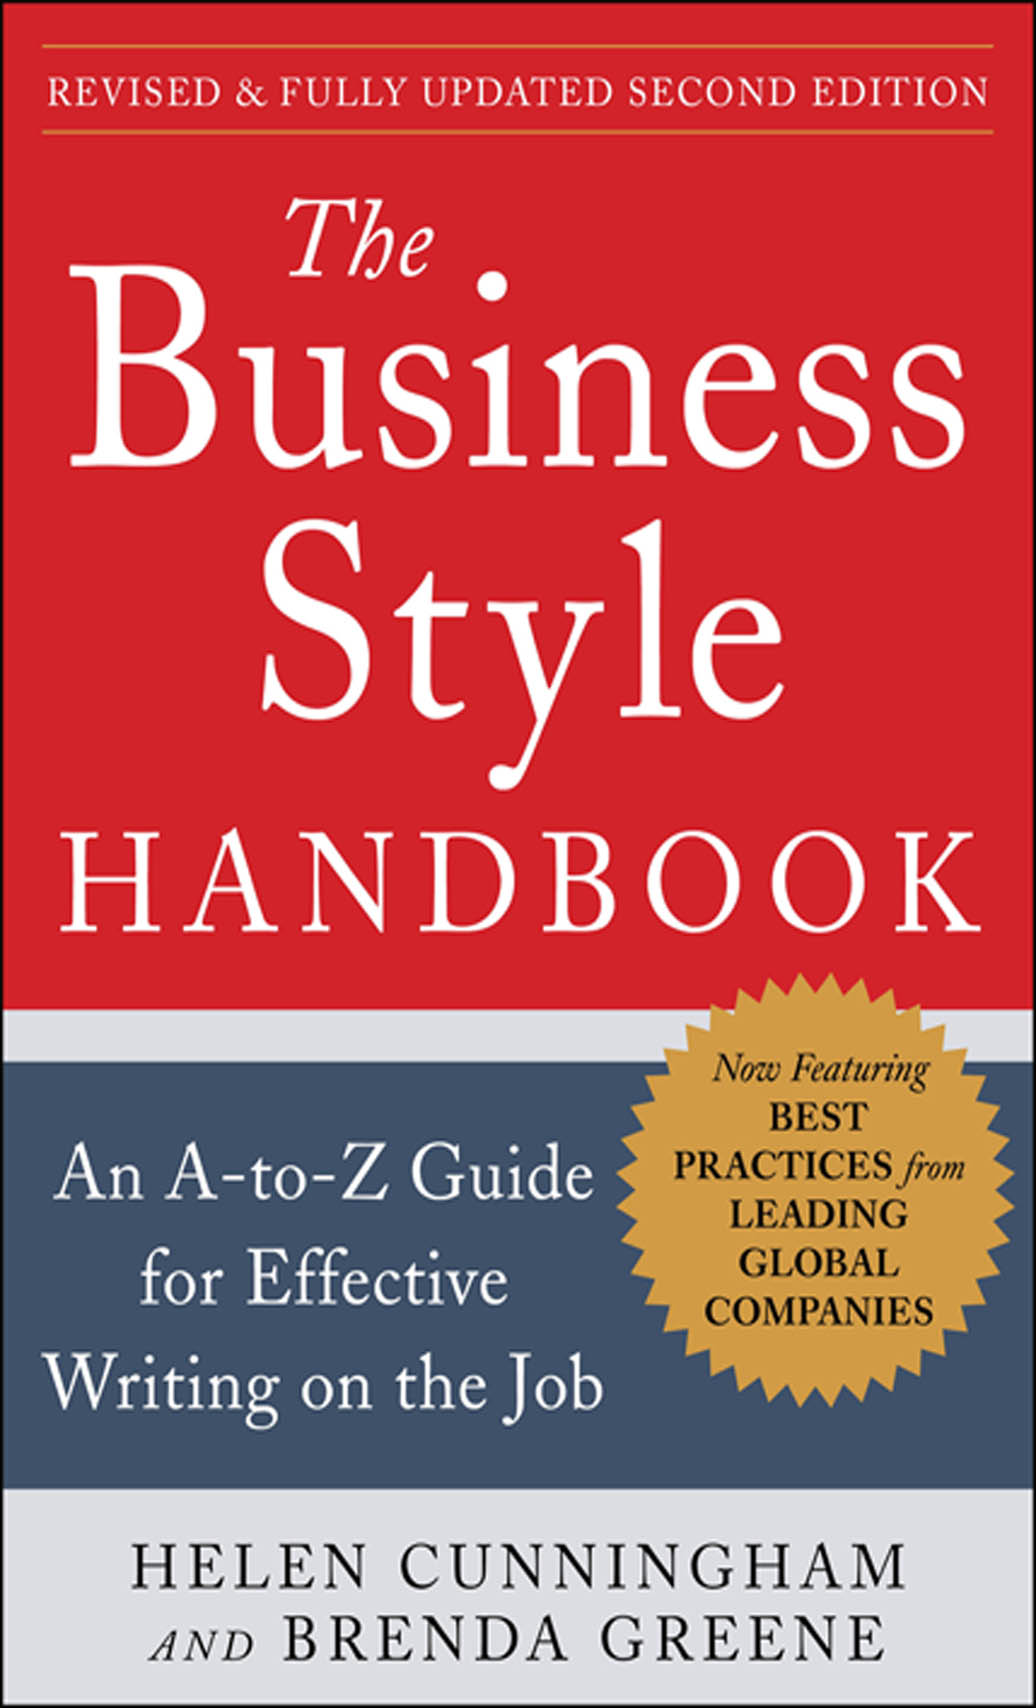 Download Ebook The Business Style Handbook, Second Edition:  An A-to-Z Guide for Effective Writing on the Job (2nd ed.) by Helen Cunningham Pdf